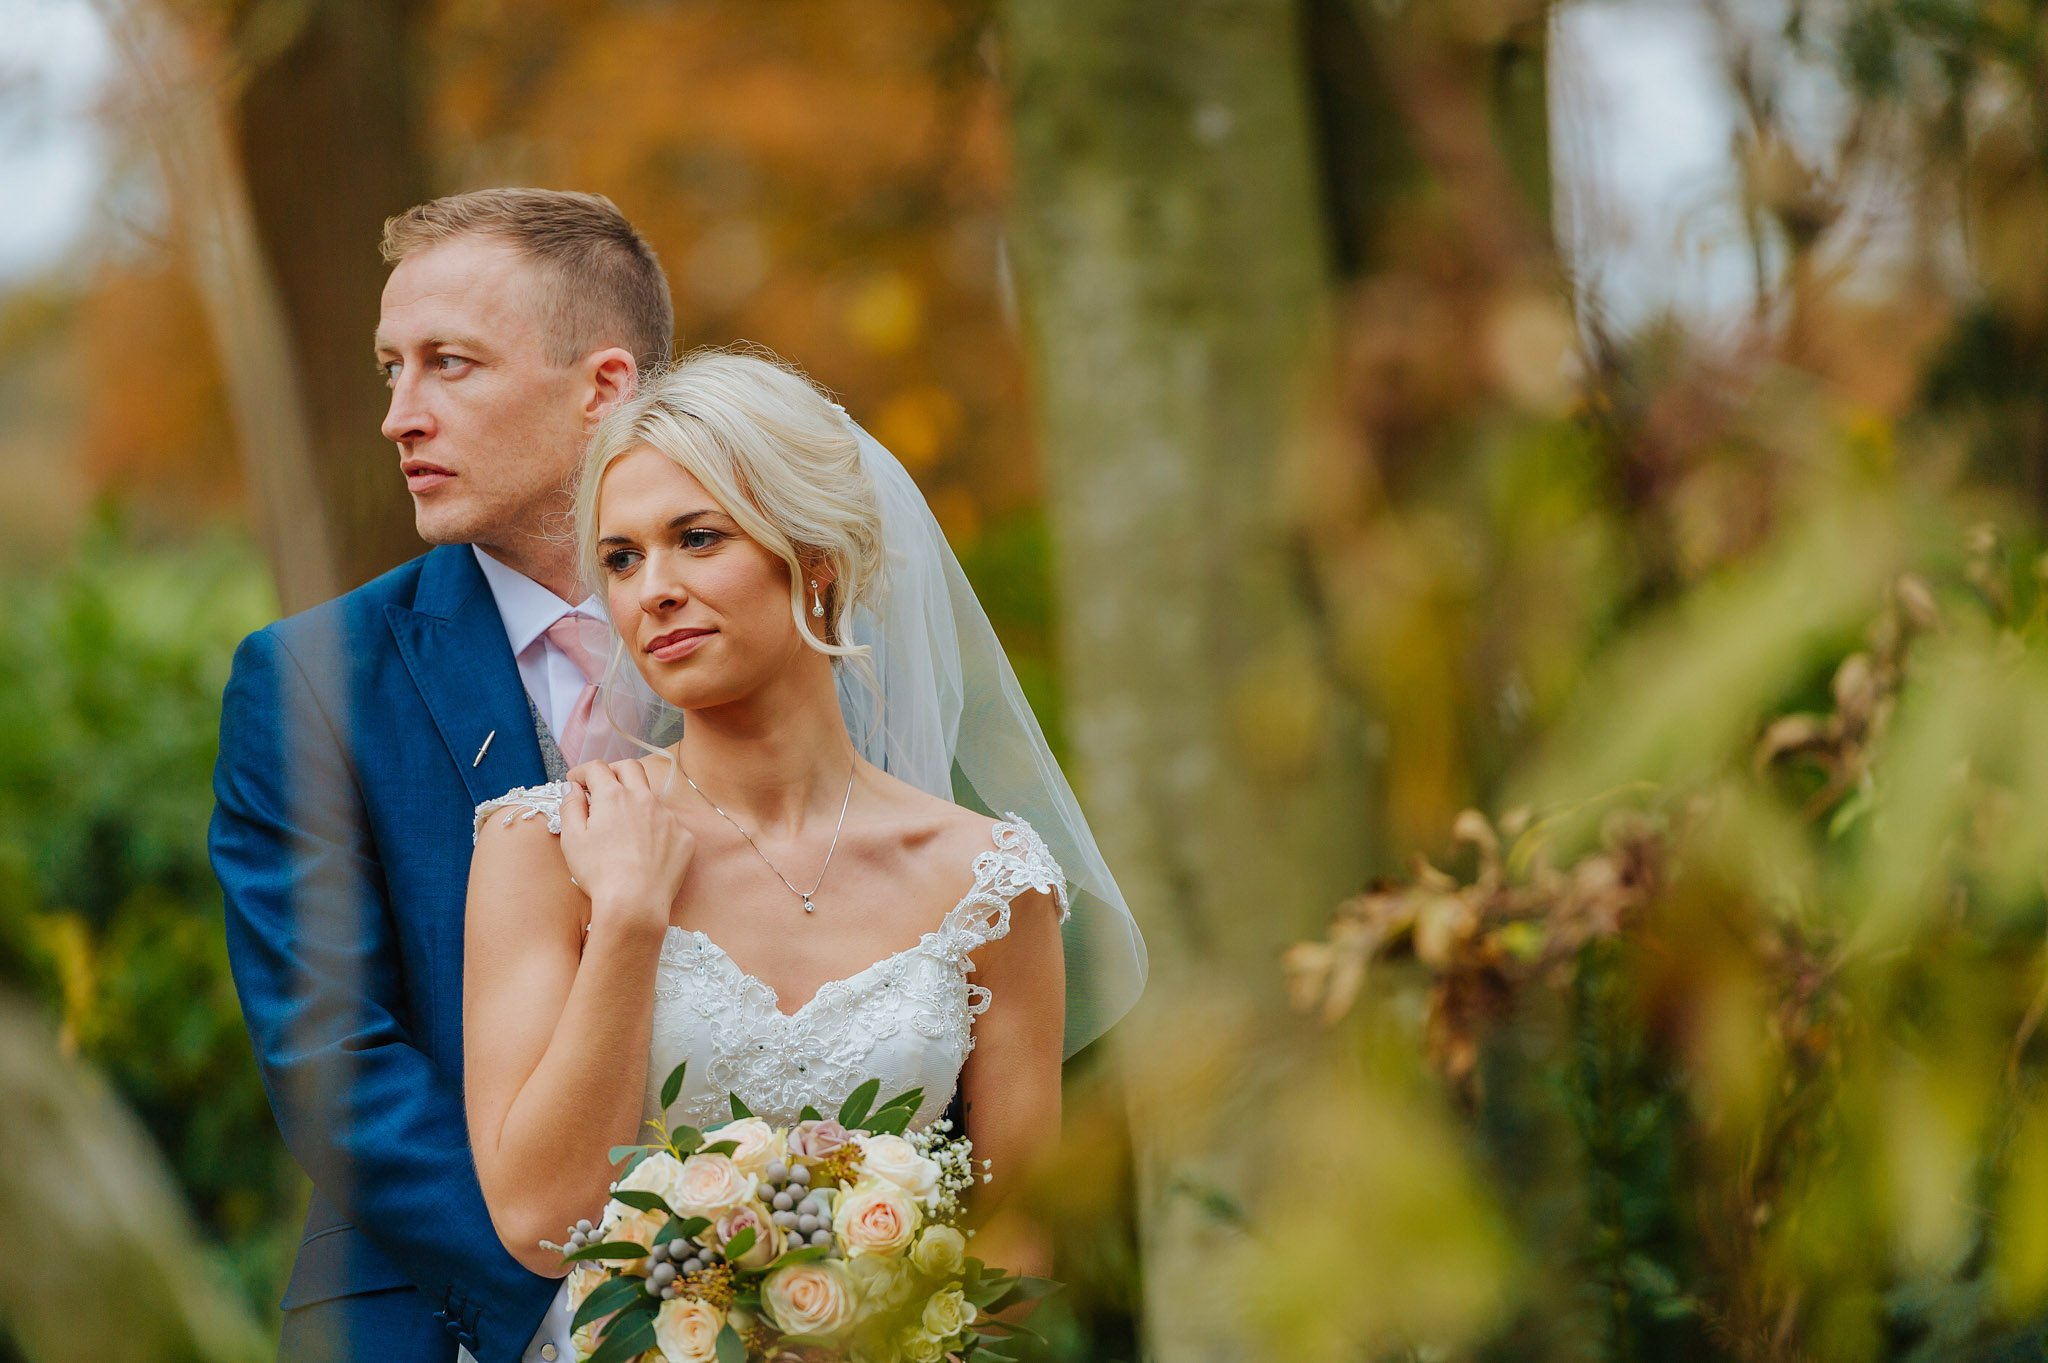 Lemore Manor wedding, Herefordshire - West Midlands | Sadie + Ken 68